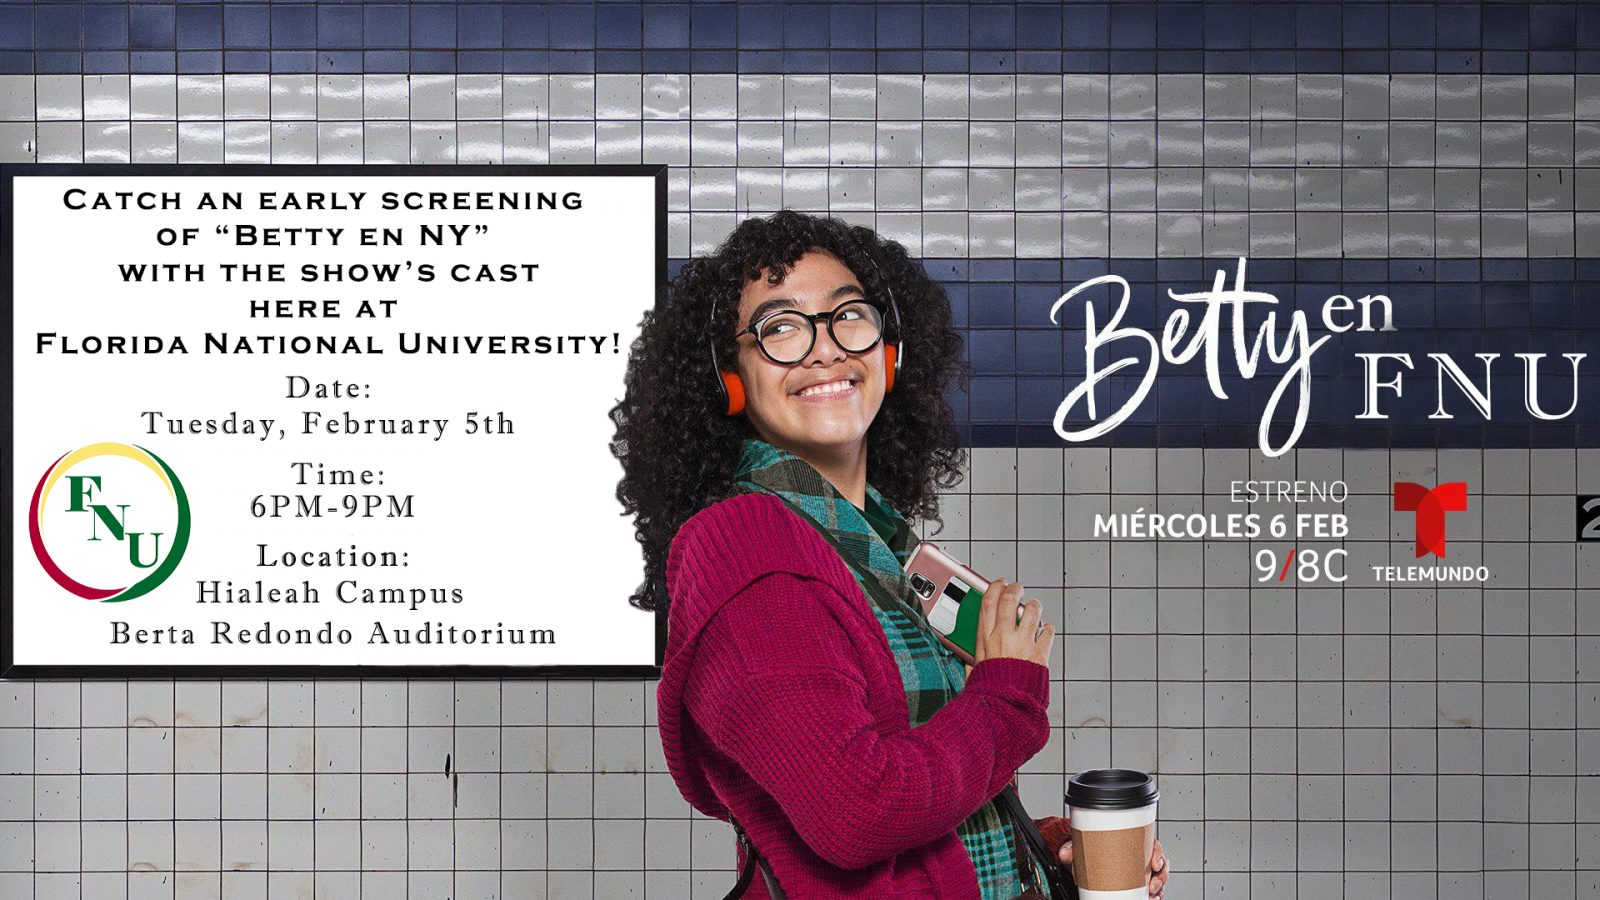 Betty en NY FNU Screening Promo Flyer